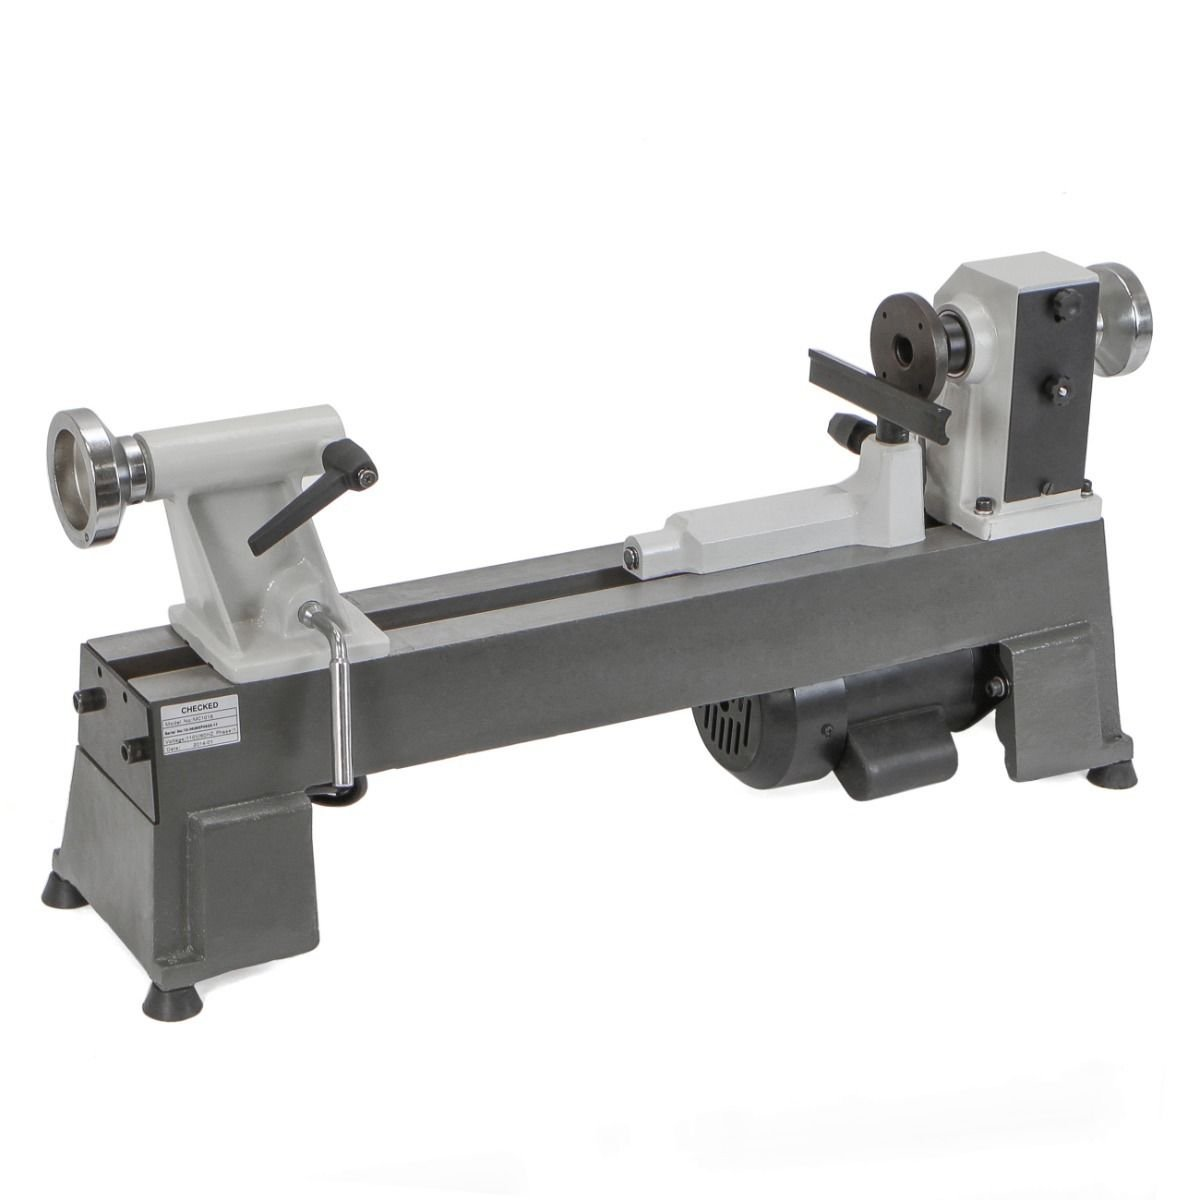 HEAVY DUTY 5 SPEED BENCH TOP POWER TURNING WOOD LATHE TOOLS NEW 10 x 18''